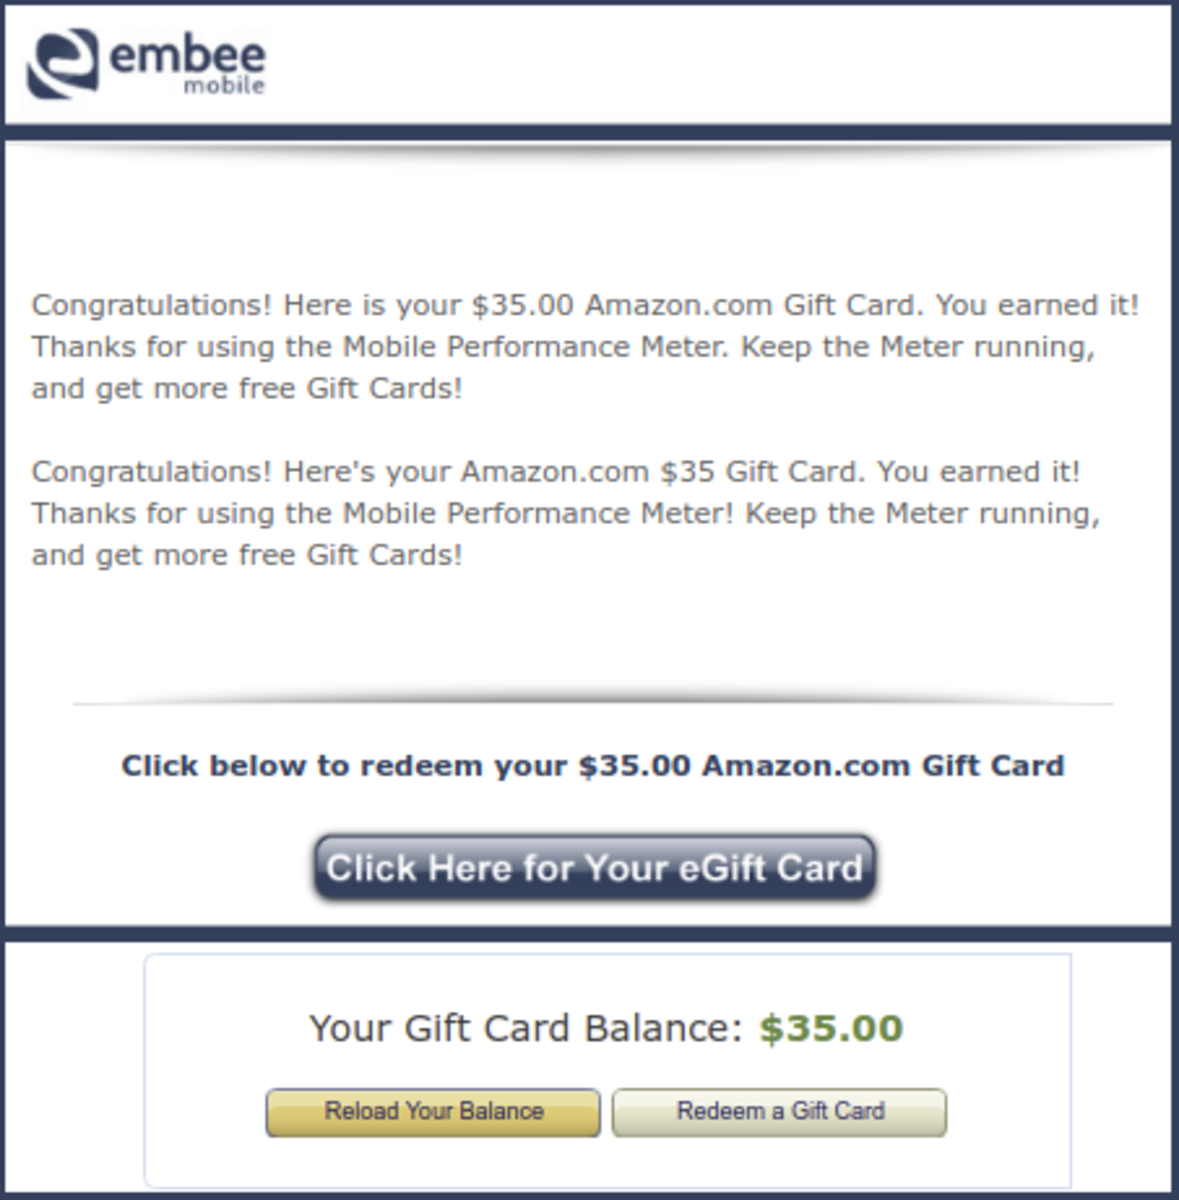 Earn Gift Cards Passively With The Embee Mobile Performance Meter